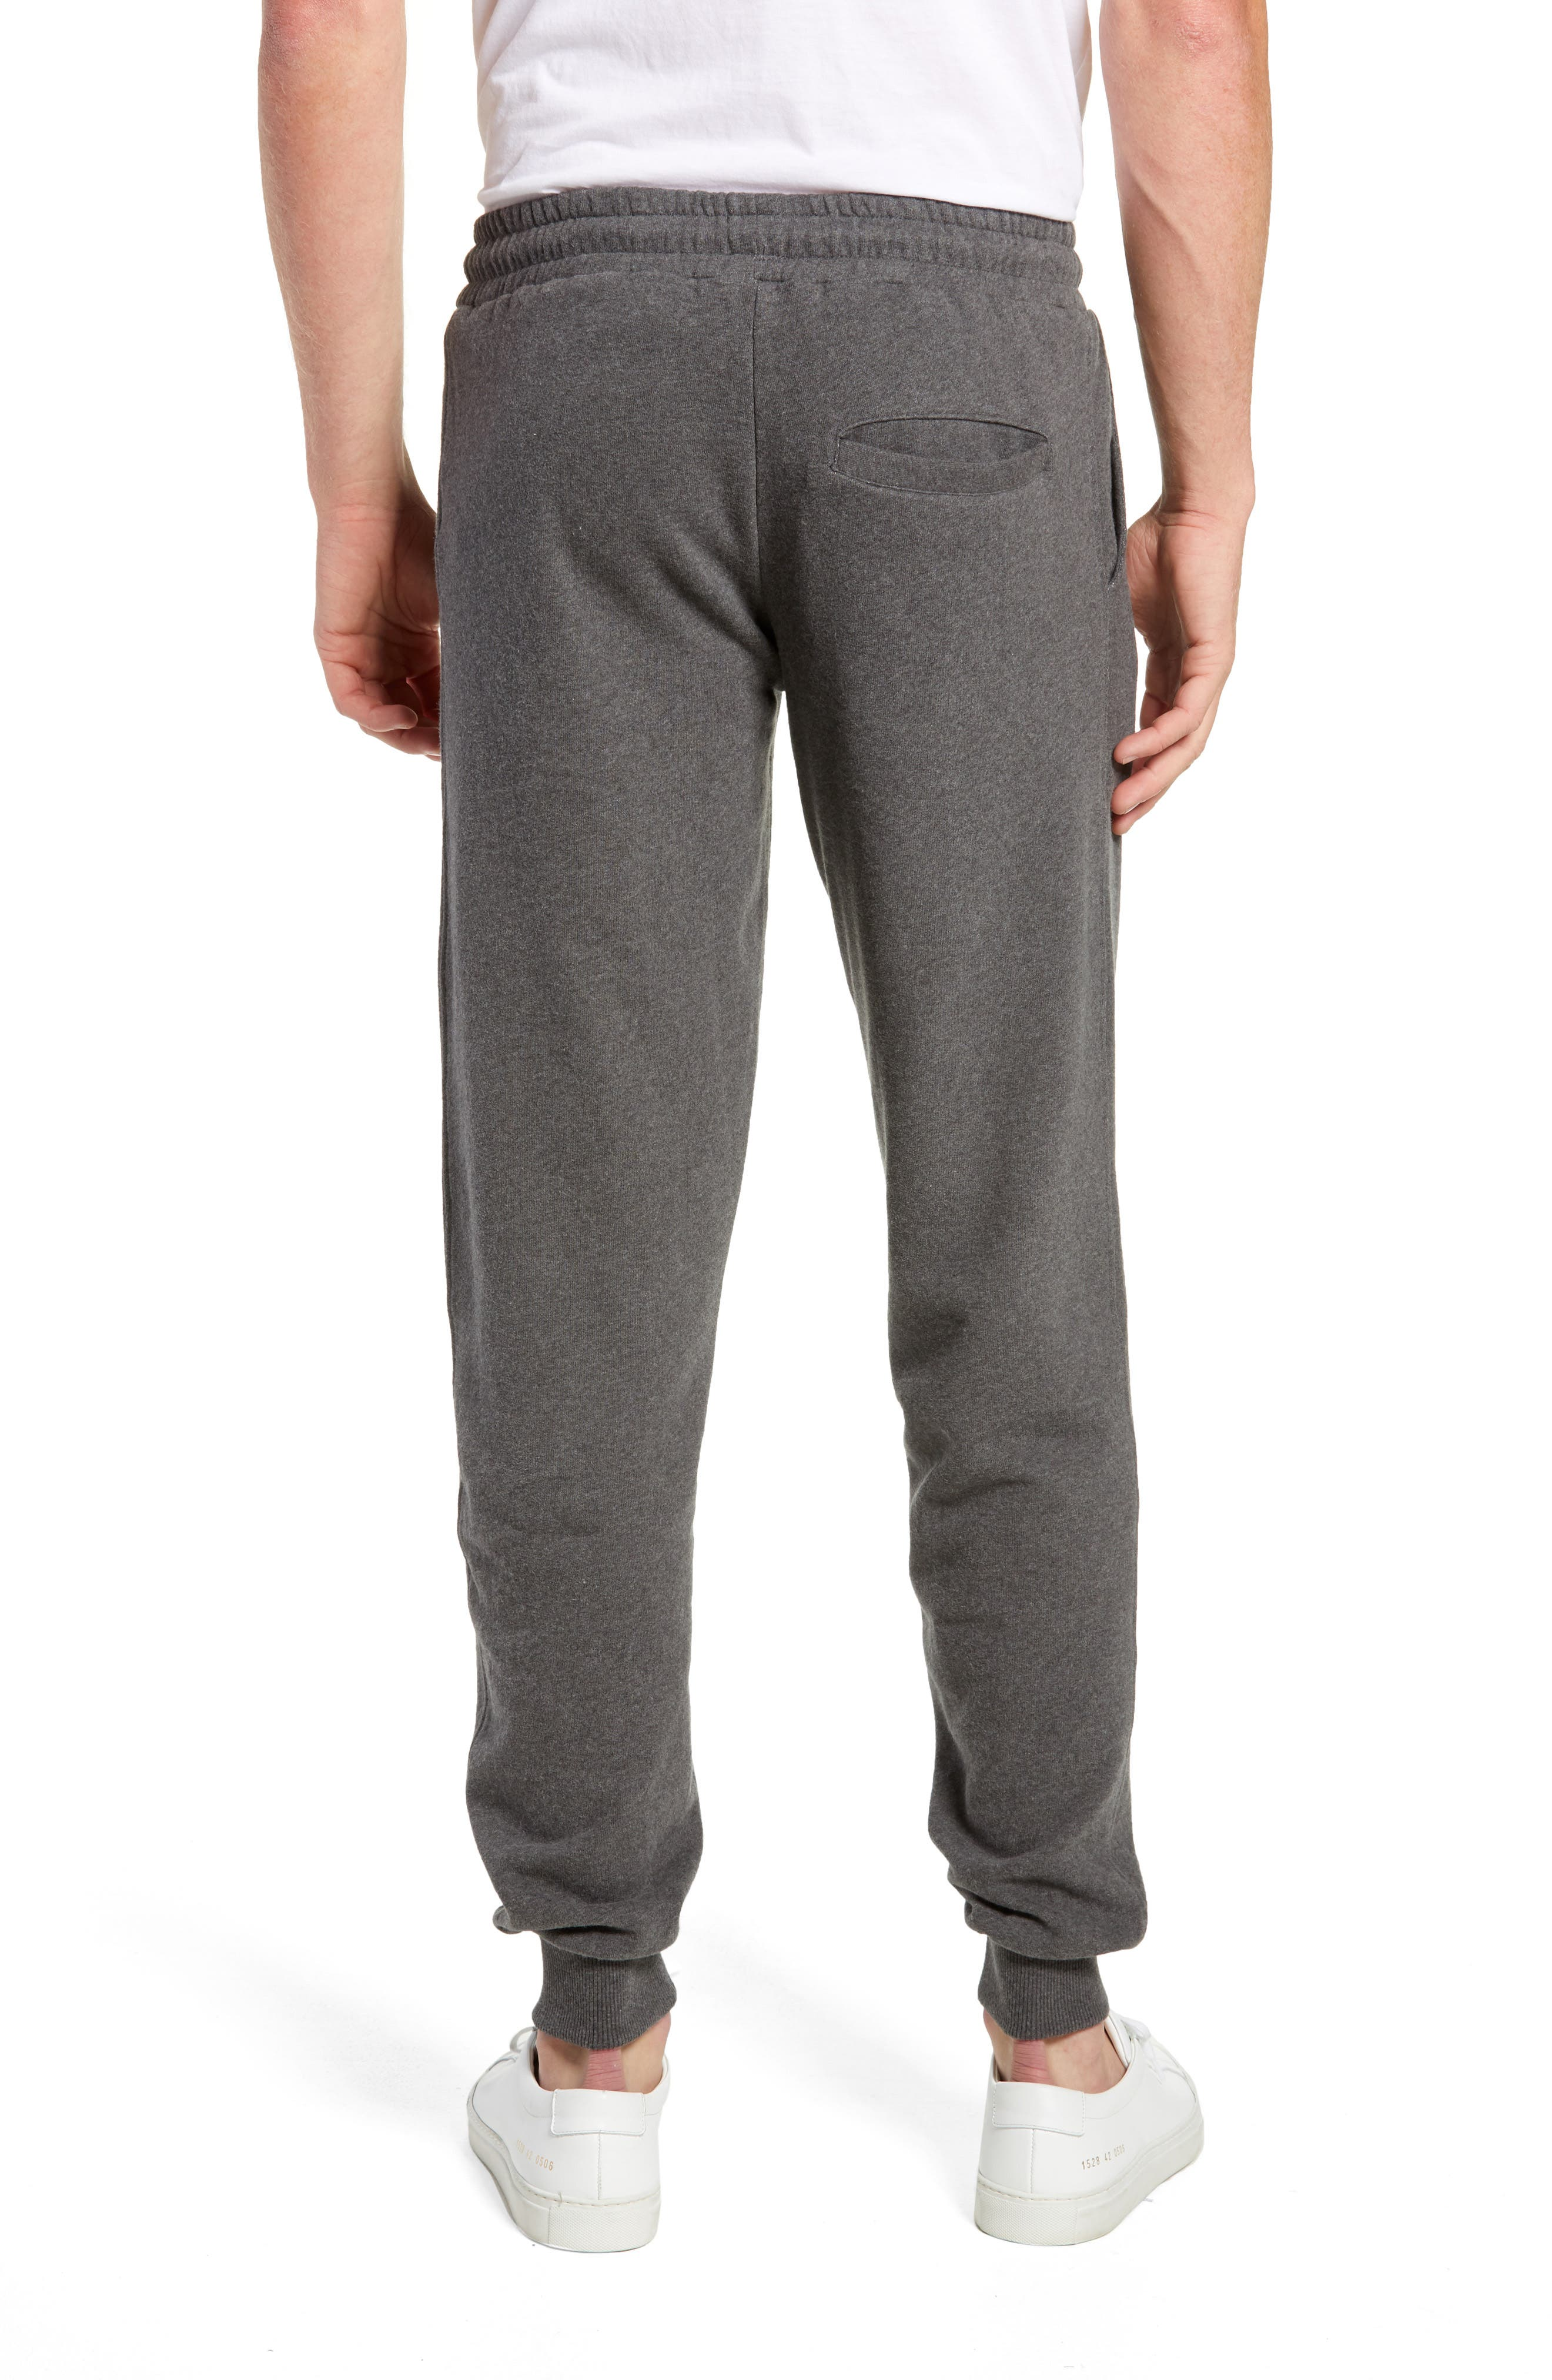 KnowledgeCotton Mélange Sweatpants,                             Alternate thumbnail 2, color,                             GREY MELANGE